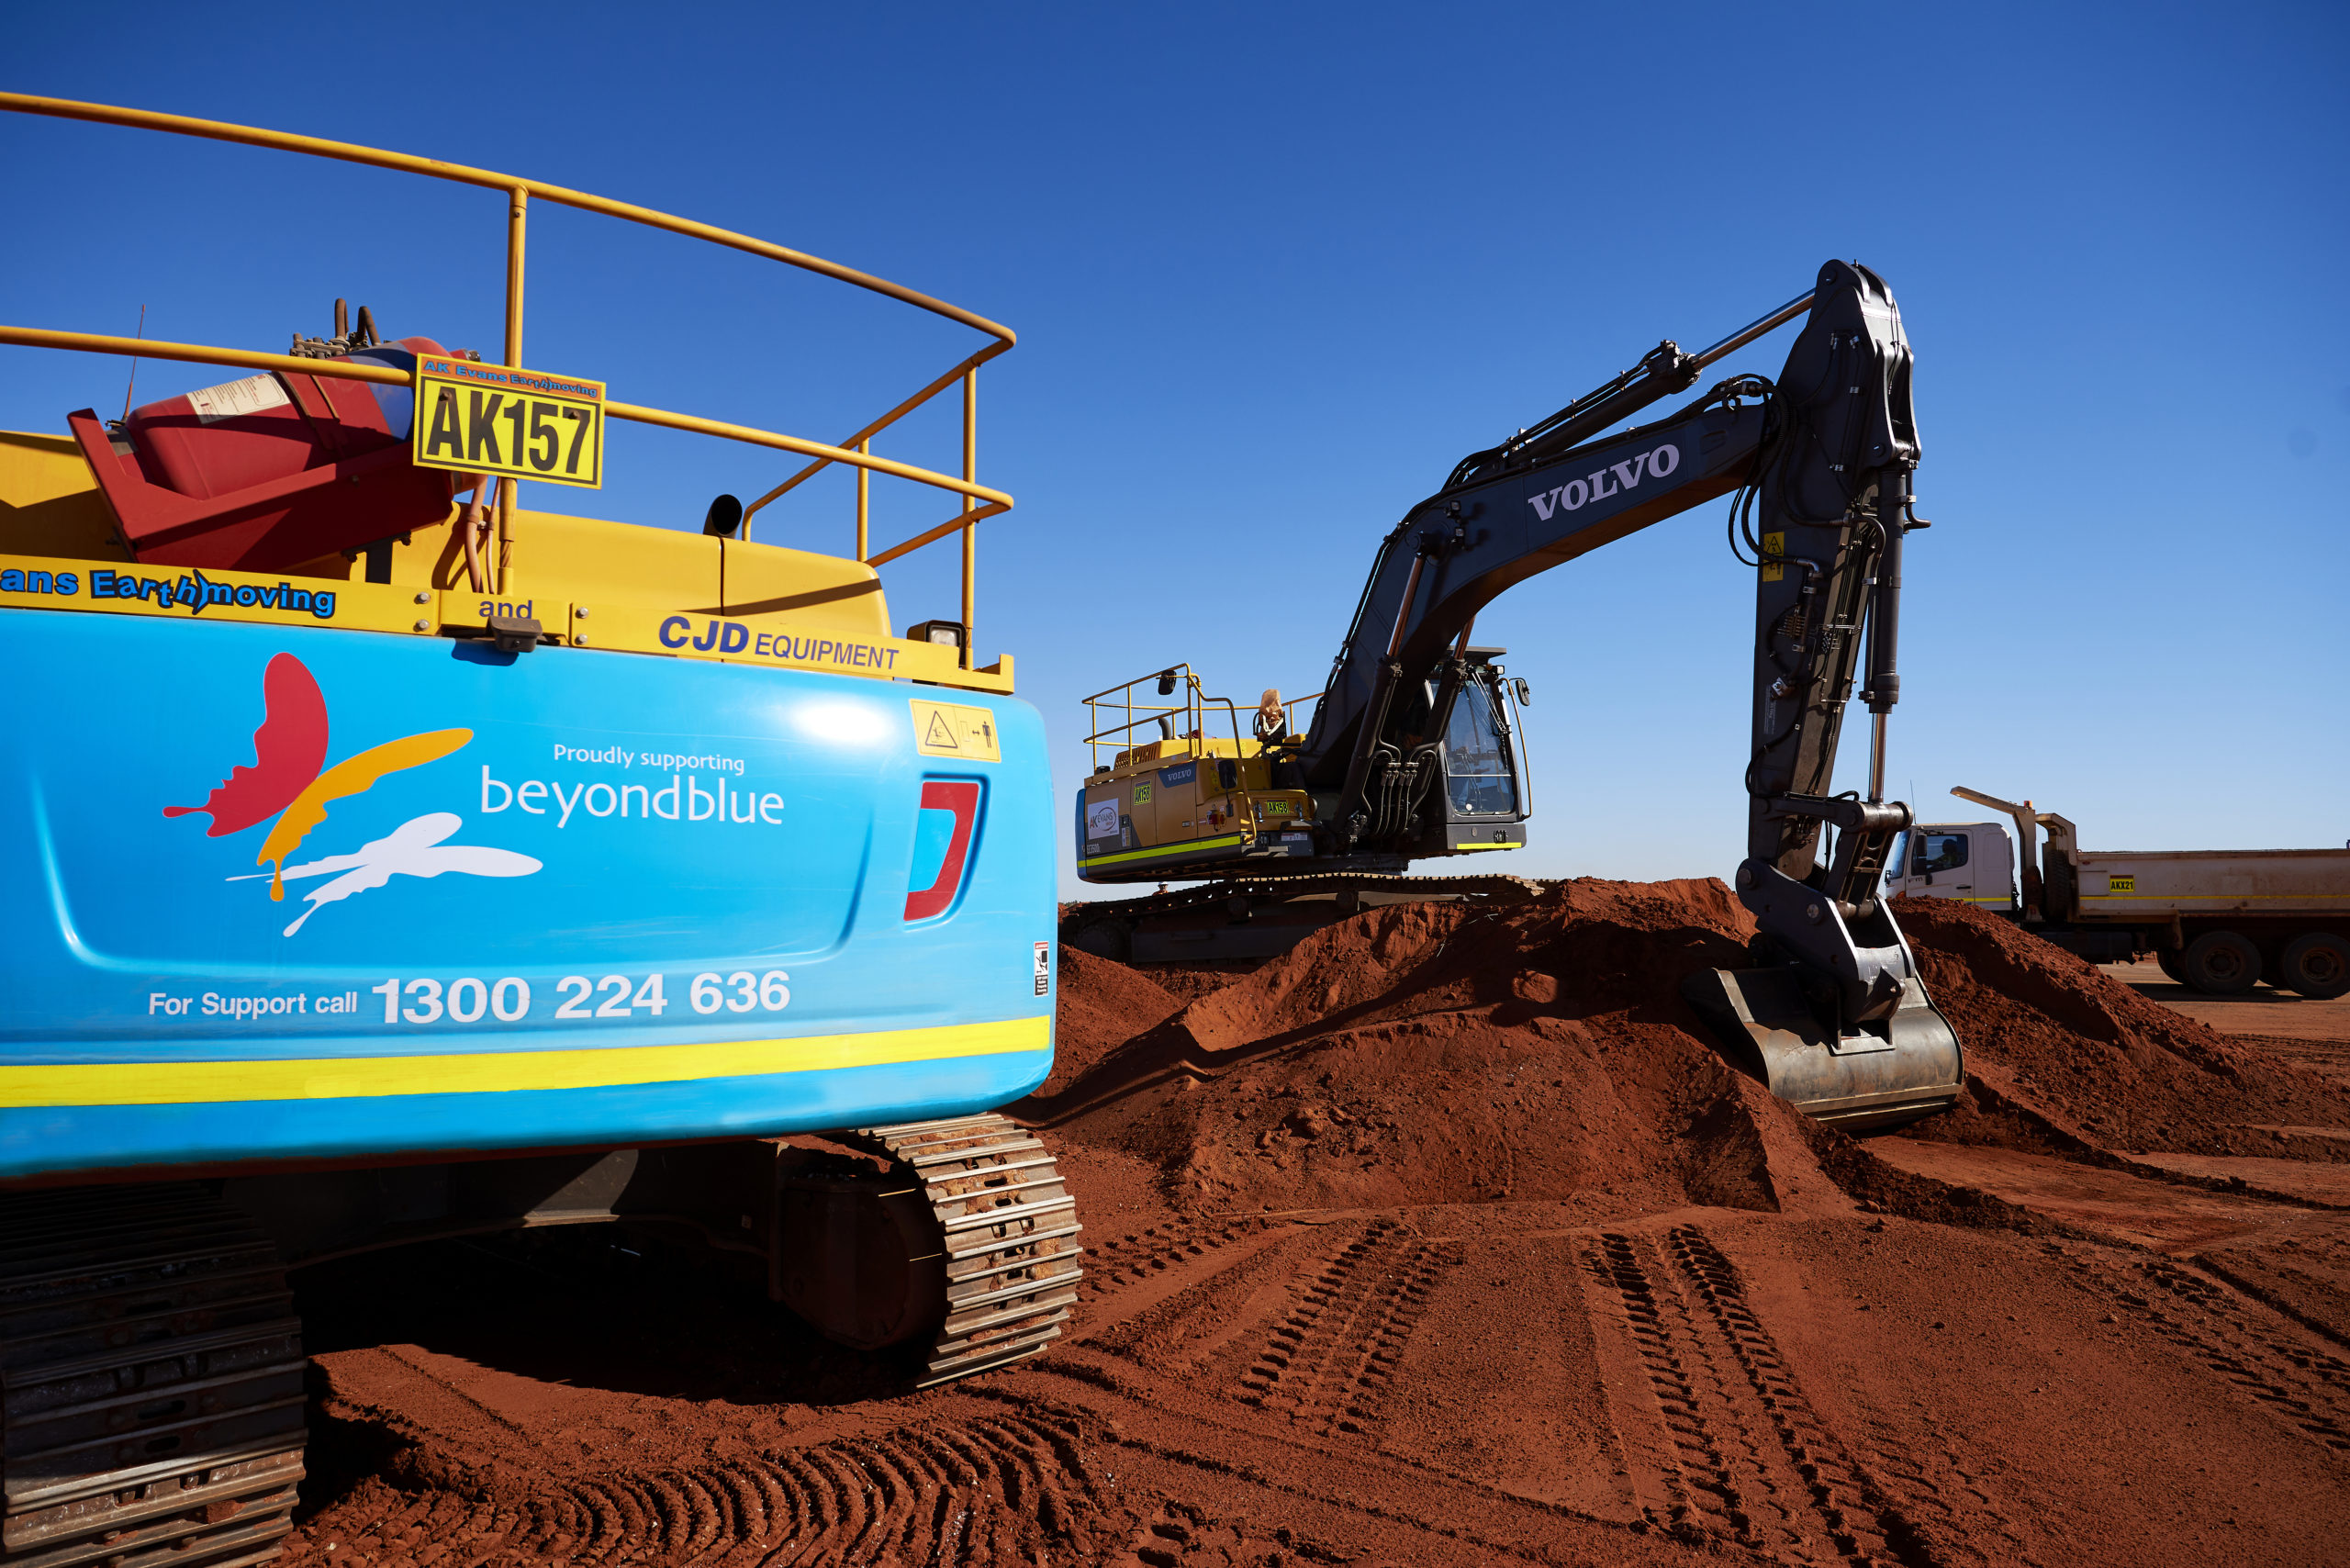 CJD Equipment Proudly Supporting Beyond Blue 3